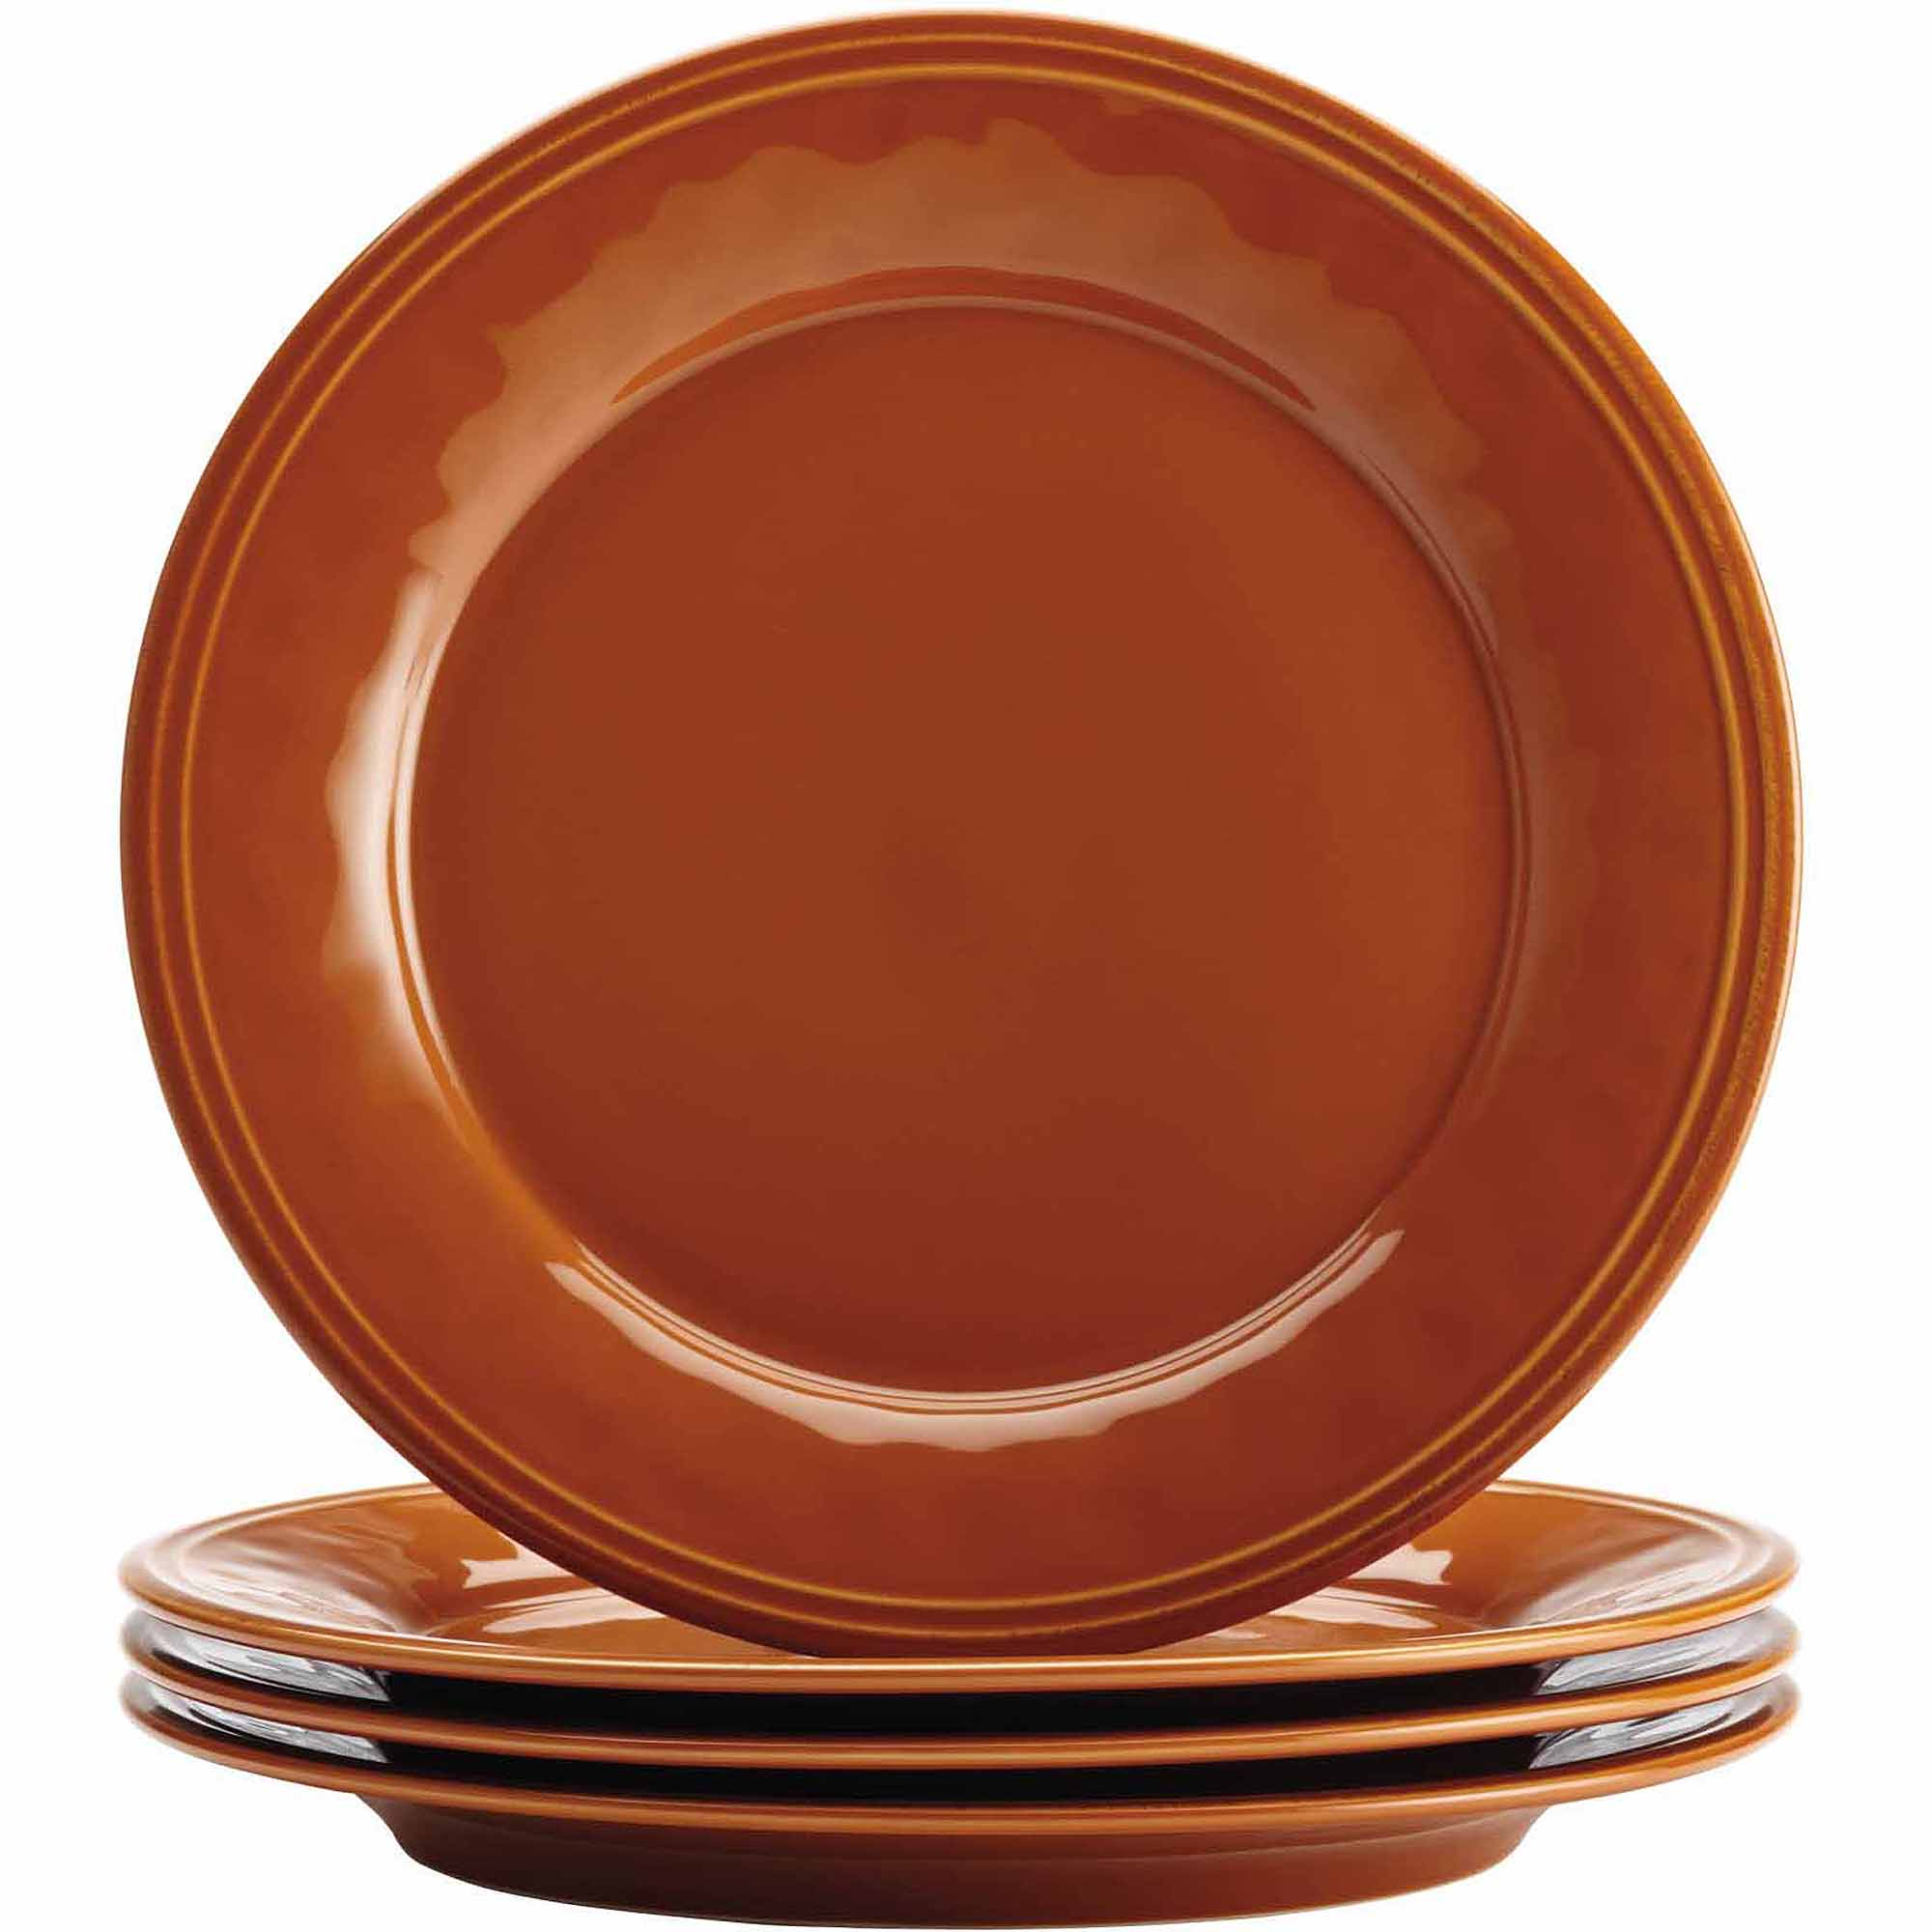 Pottery Dinnerware | Multicolor Dinnerware Sets | Stoneware Dinnerware Sets